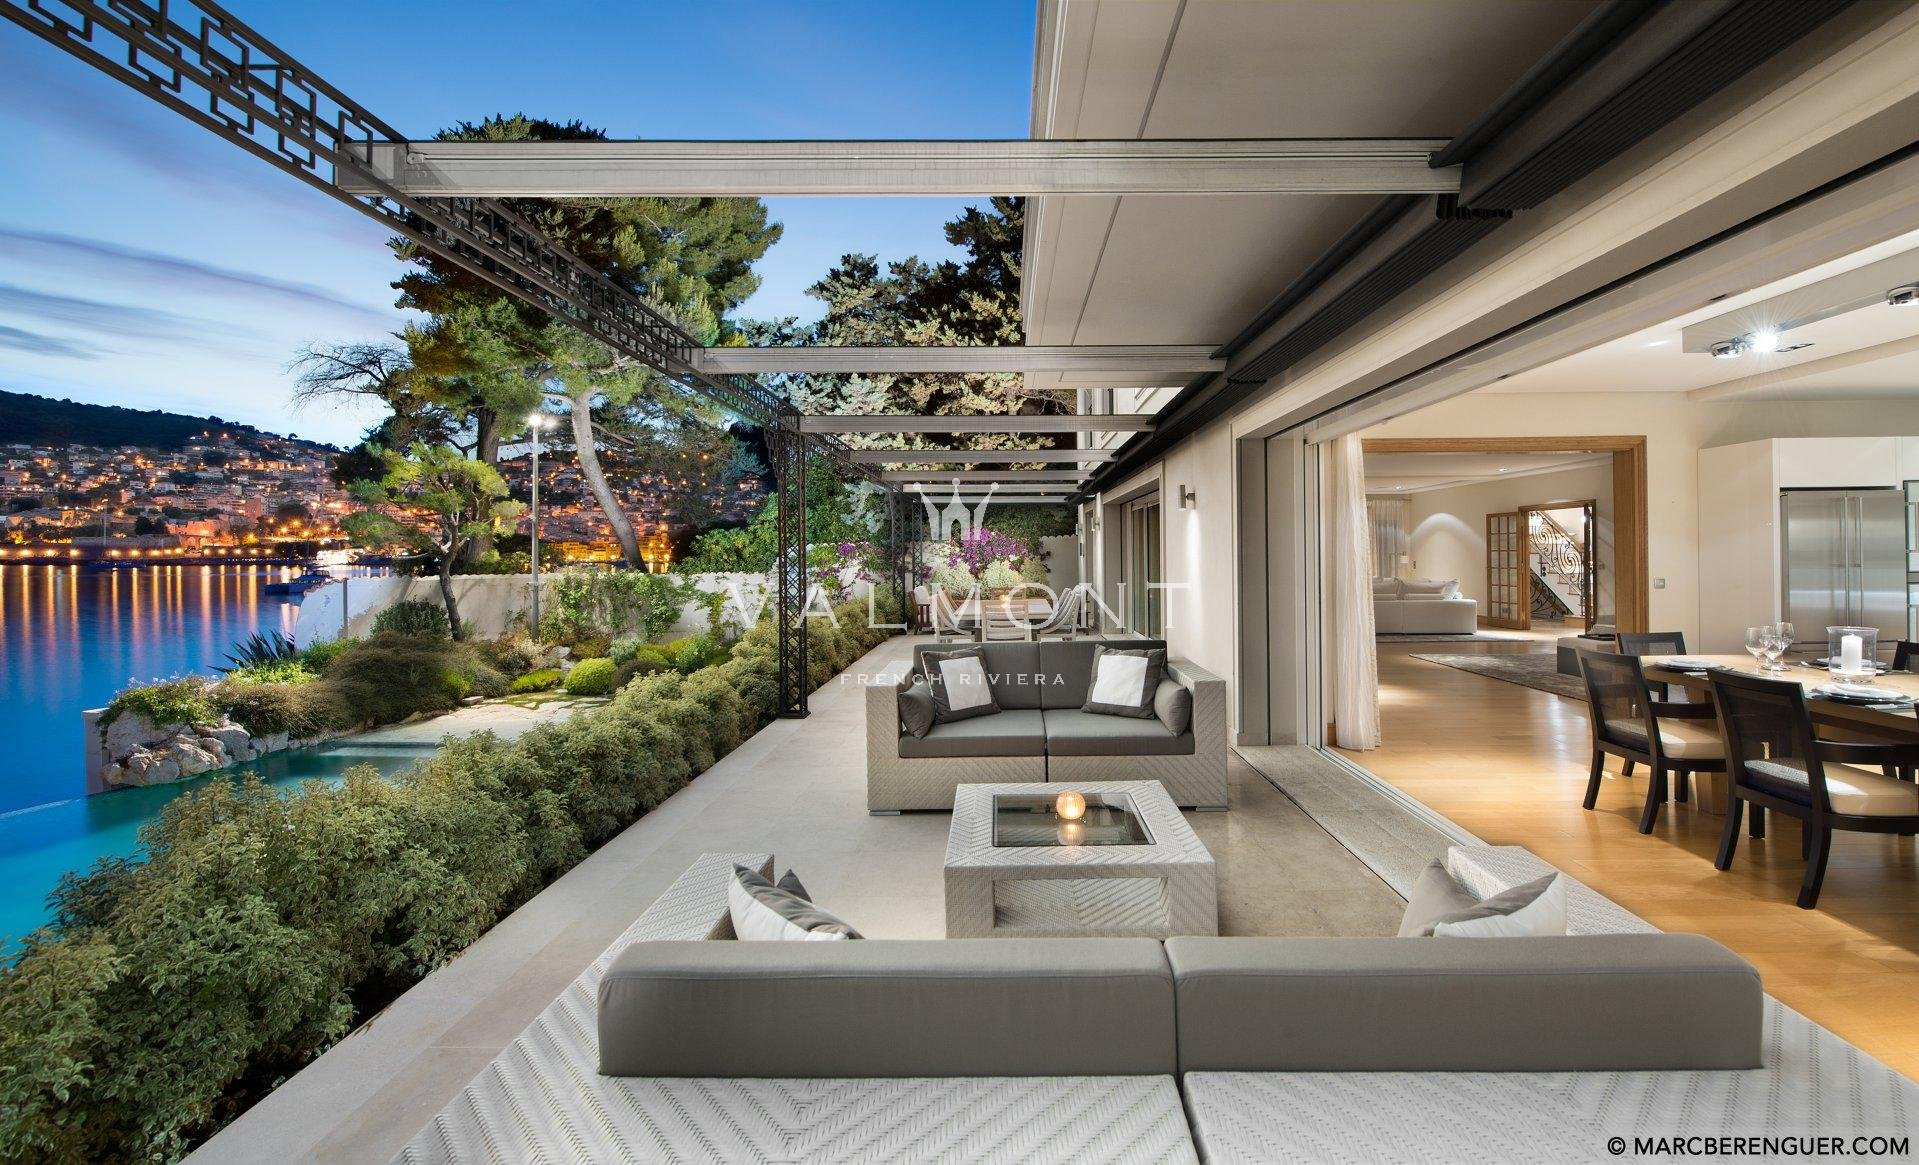 WATER'S EDGE VILLA WITH VIEWS ON CAP FERRAT